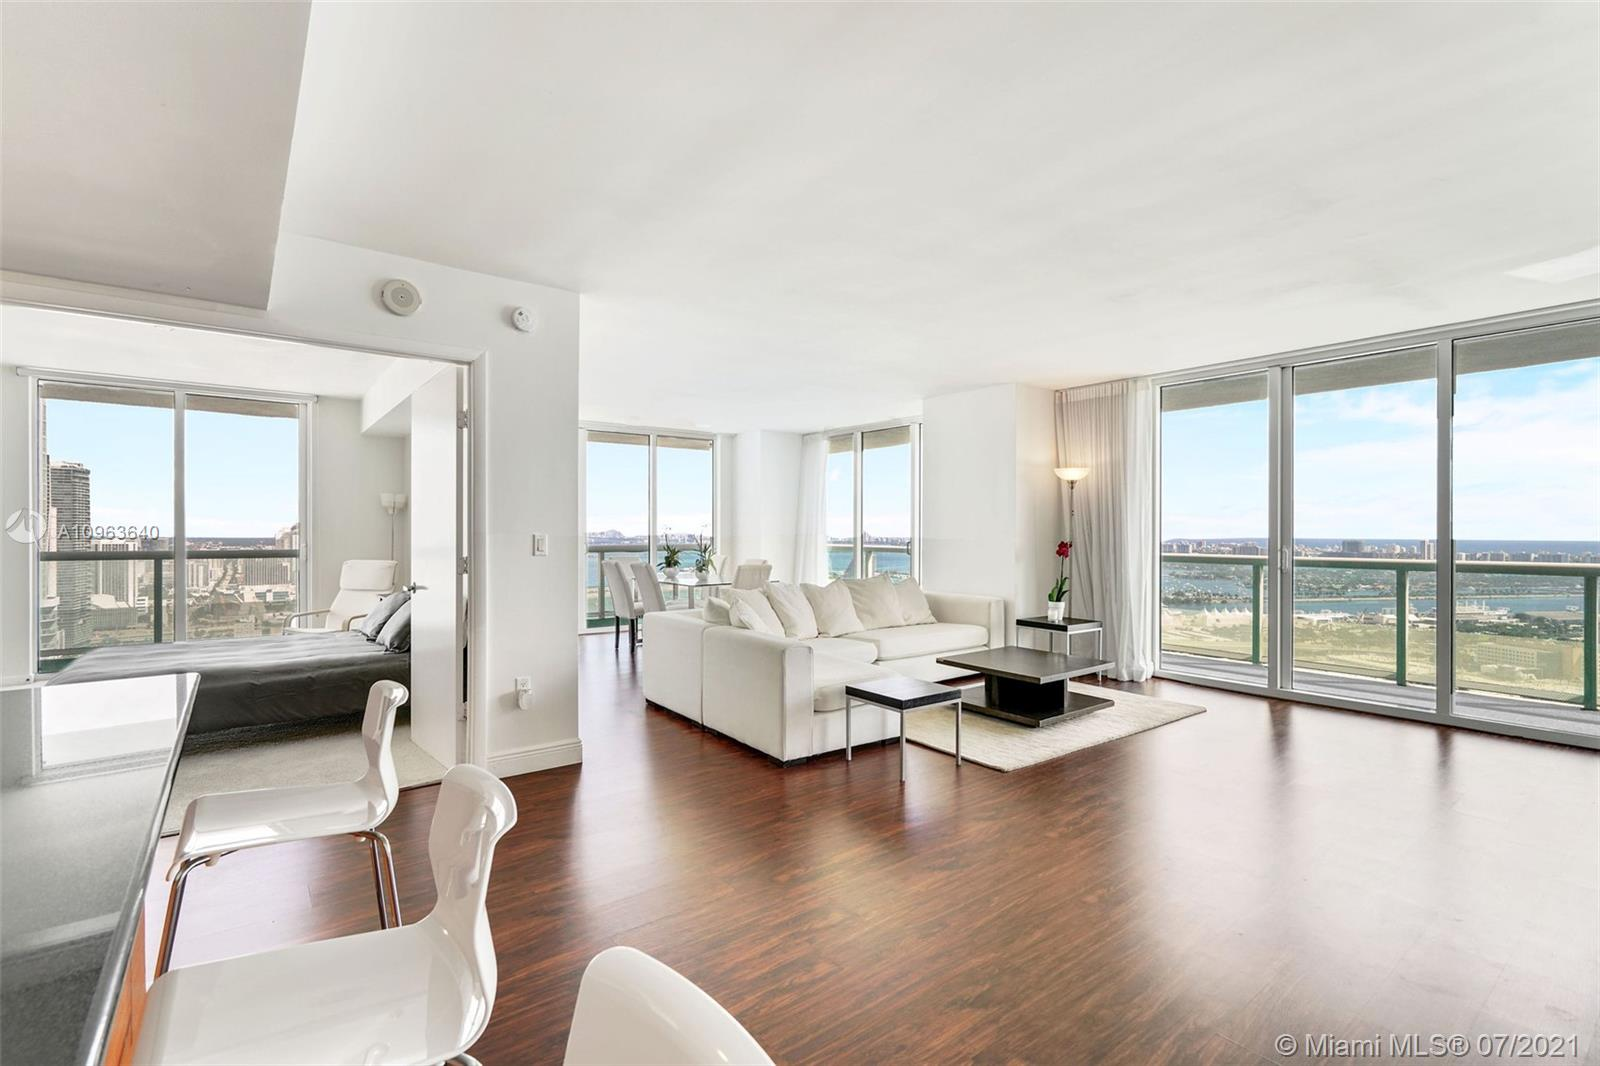 Absolutely stunning panoramic views from this spacious 3 bedroom, 2 bath corner unit with a wrap around glass balcony, located in one of Miami's finest condominiums. Floor to ceiling impact windows, this unit features views from every room, overlooking the ocean, bay & Bayfront Park providing an abundance of natural light throughout the unit. Italian kitchen, granite countertops, marble bathrooms including large master w/separate whirlpool tub and glass shower & dual sinks, great closets including 4 walk-ins, & washer/dryer. Amenities include 24-hour doorman and concierge, state-of-the-art fitness center, valet parking, heated pool with cabanas & jacuzzi, meditation room, spa, sauna & more. Great location- walking distance to shops, restaurants, arena, preforming arts center and Brickell.